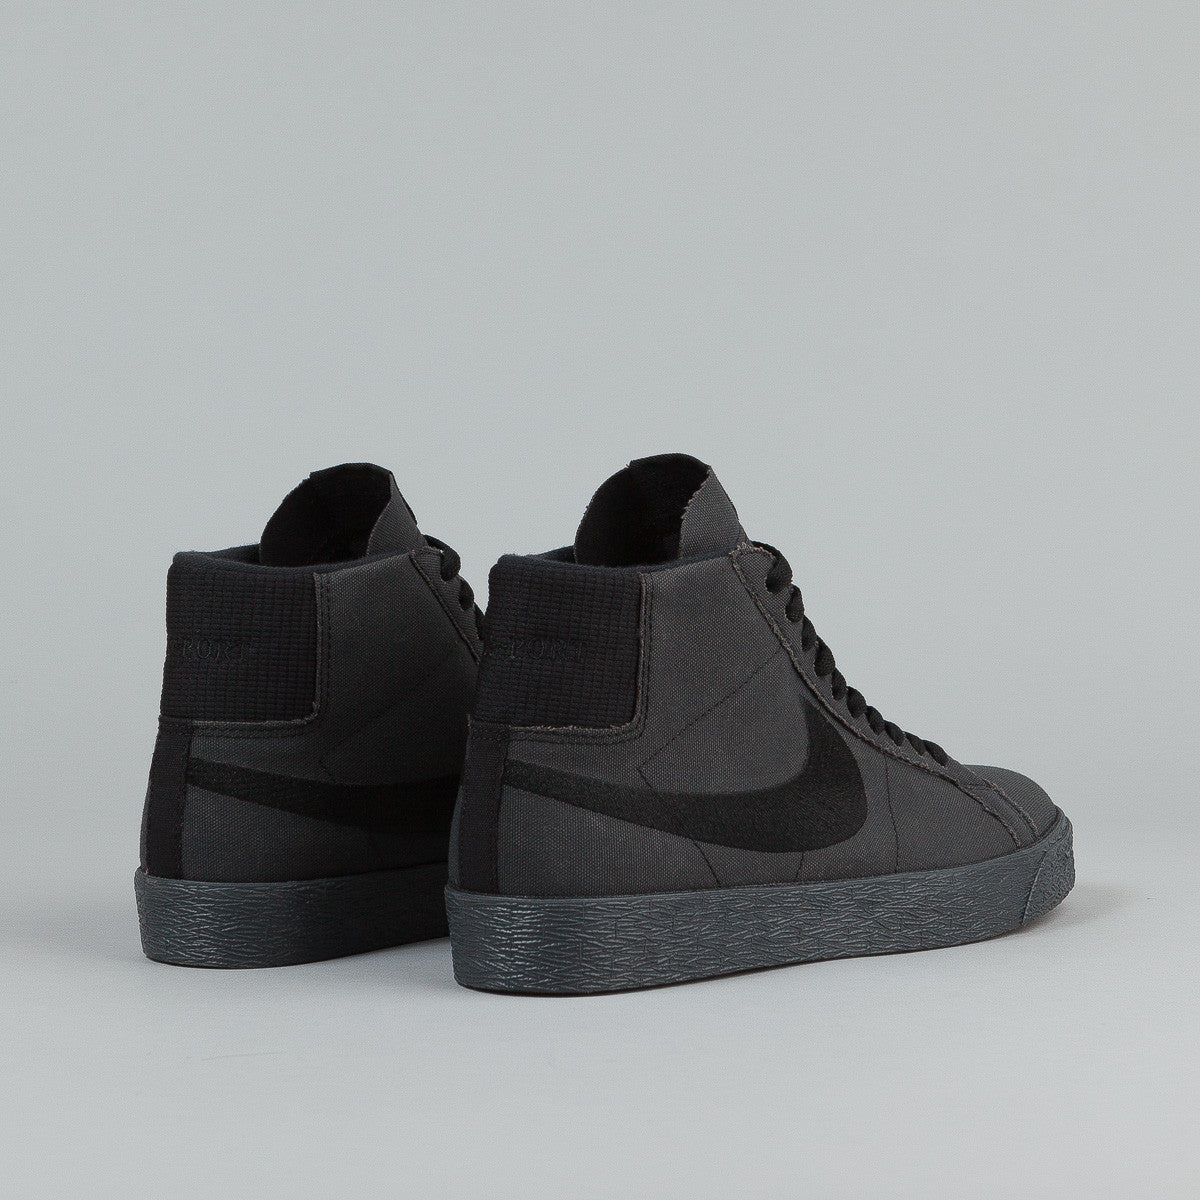 Nike SB x Pass Port Blazer QS Shoes - Black / Black -  Anthracite